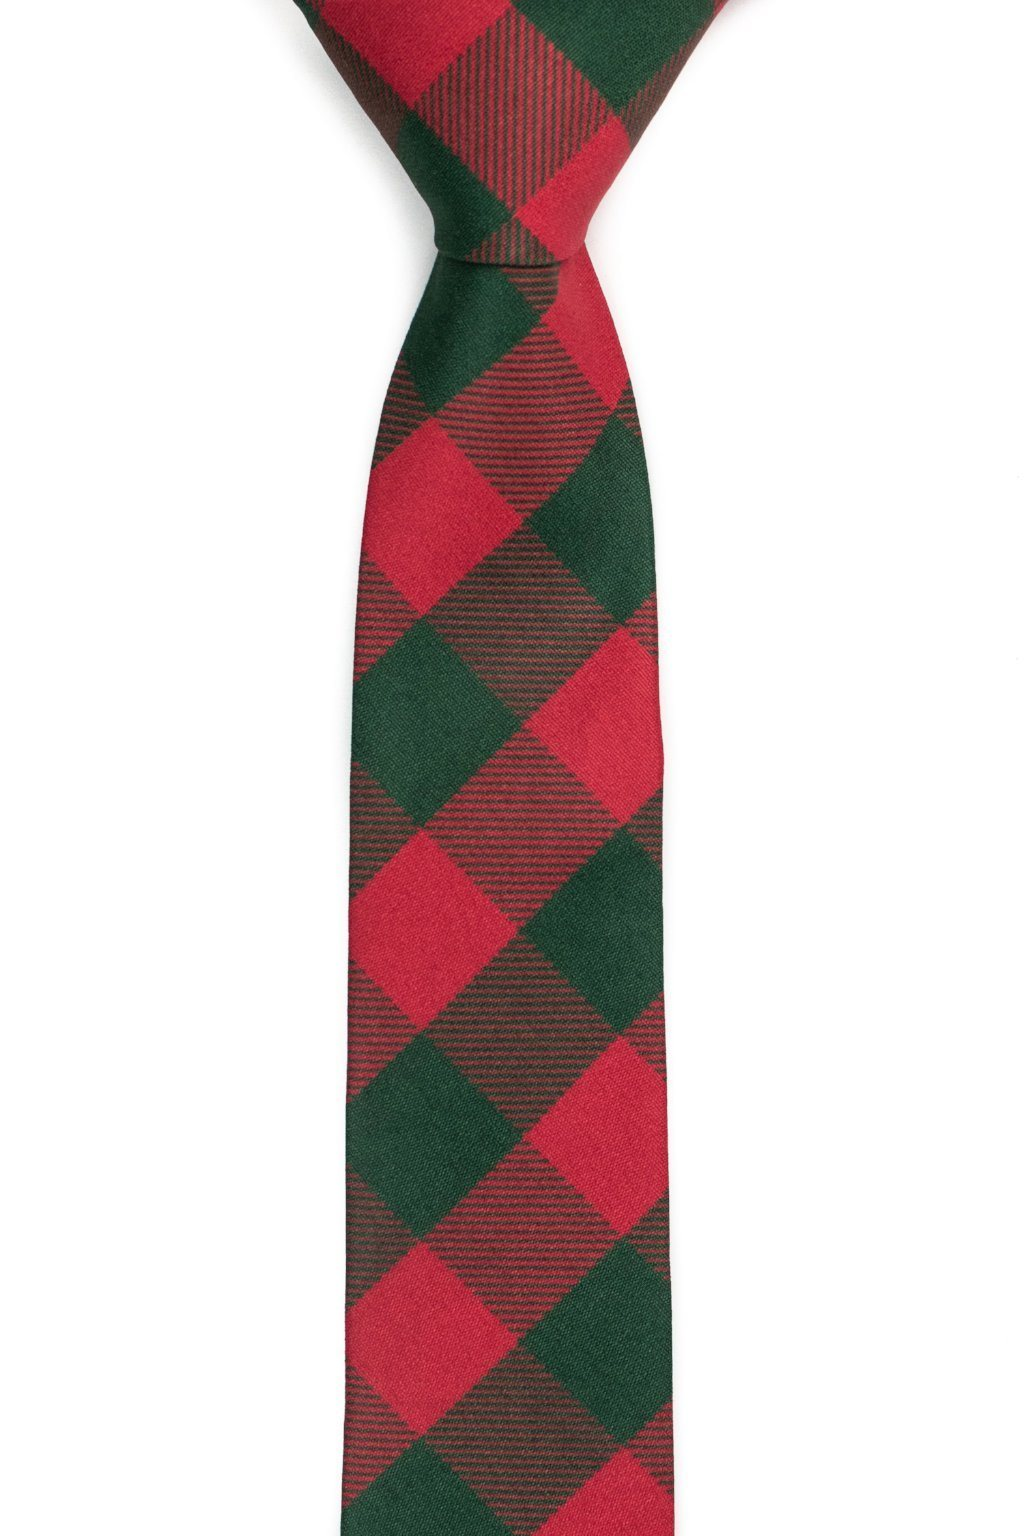 Piper Sparklecake - Green & Red Checkered Tie